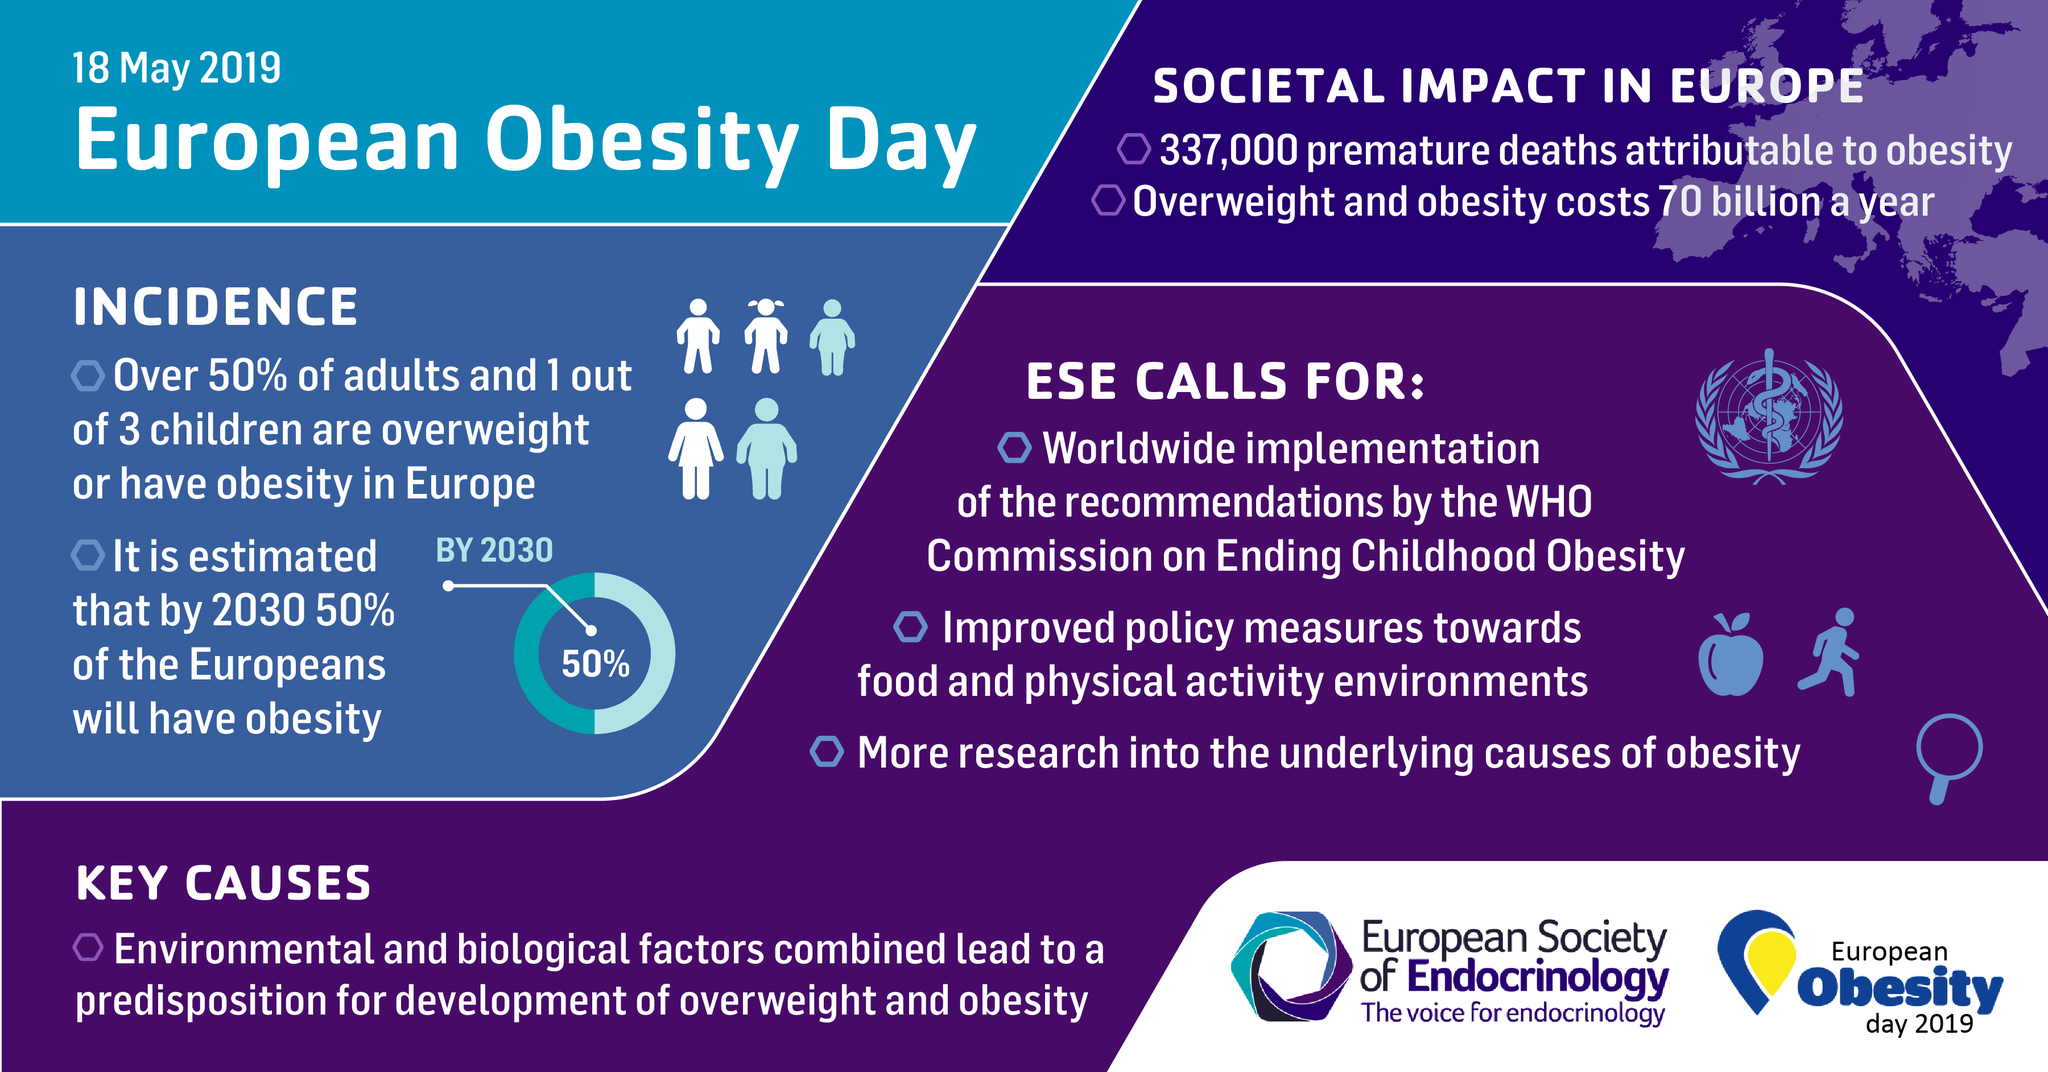 European Society Of Endocrinology Ese On Twitter Ese Supports European Obesity Day 2019 To Raise Awareness For The Impact Of Obesity Urgent Action Is Required To Halt The Global Obesity Epidemic Eod2019